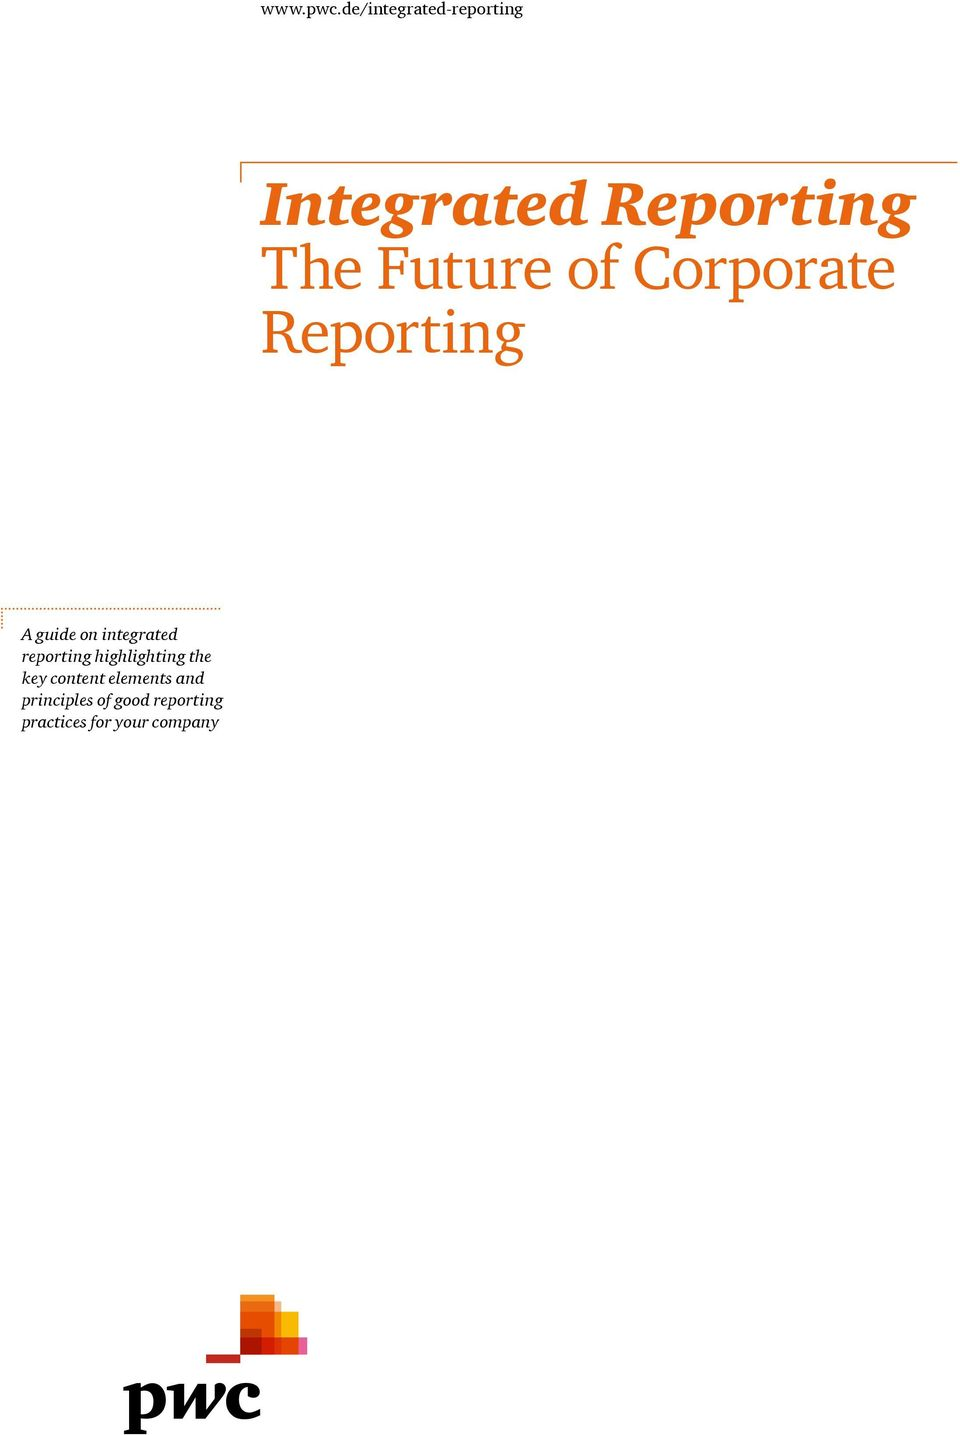 Integrated Reporting The Future of Corporate Reporting - PDF